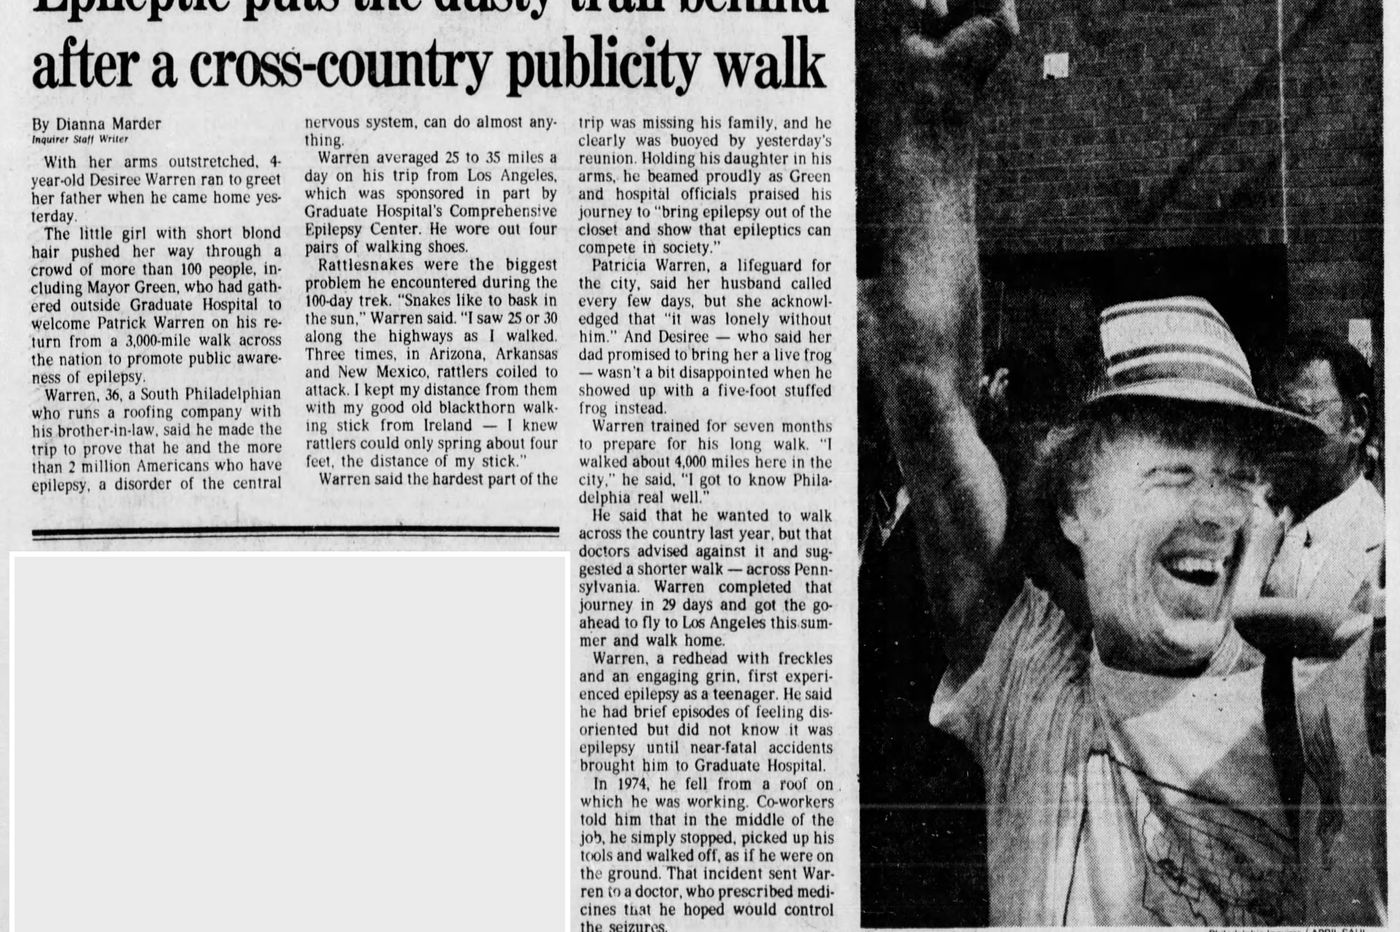 From The Inquirer archives: Epileptic man puts the dusty trail behind after a cross-country publicity walk